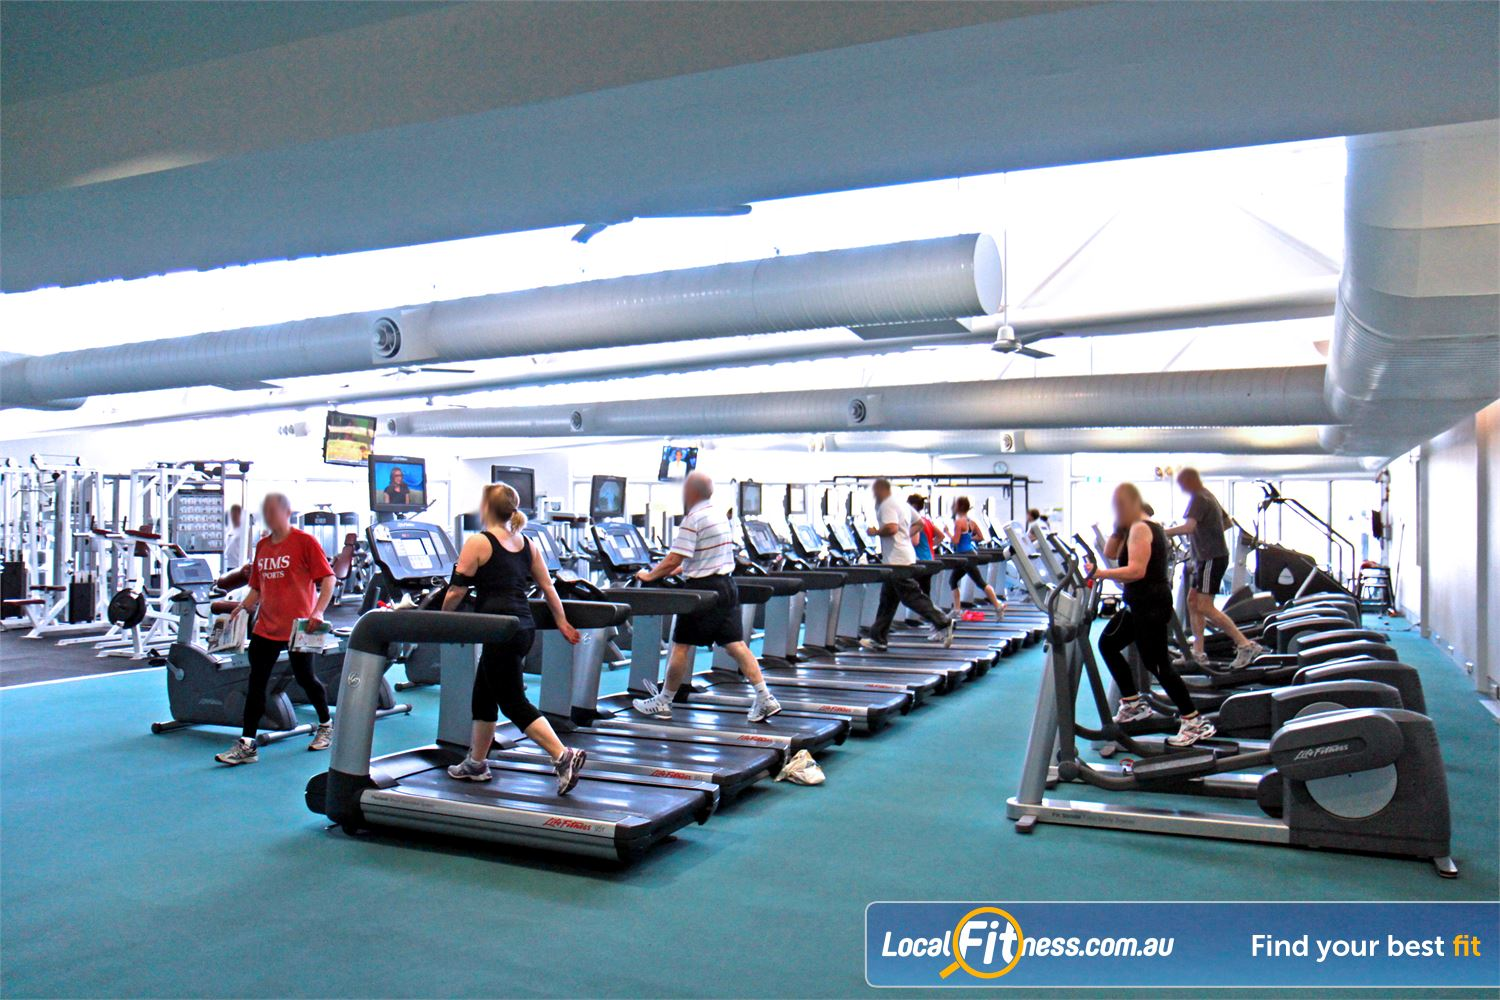 Ascot Vale Leisure Centre Ascot Vale The spacious cardio theatre part of the 1000 sq/m Ascot Vale gym space.